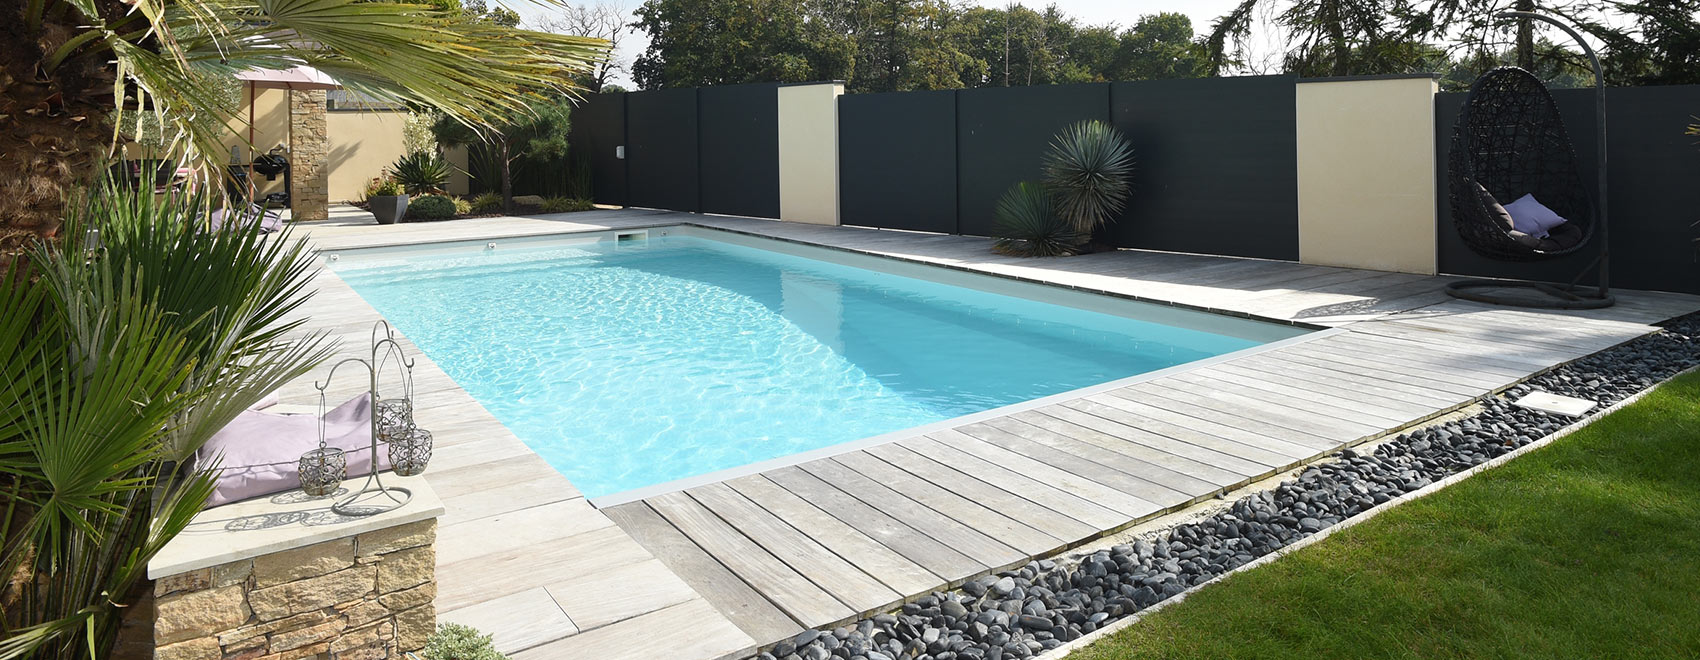 piscines gatel construction de piscine pr s de nantes. Black Bedroom Furniture Sets. Home Design Ideas